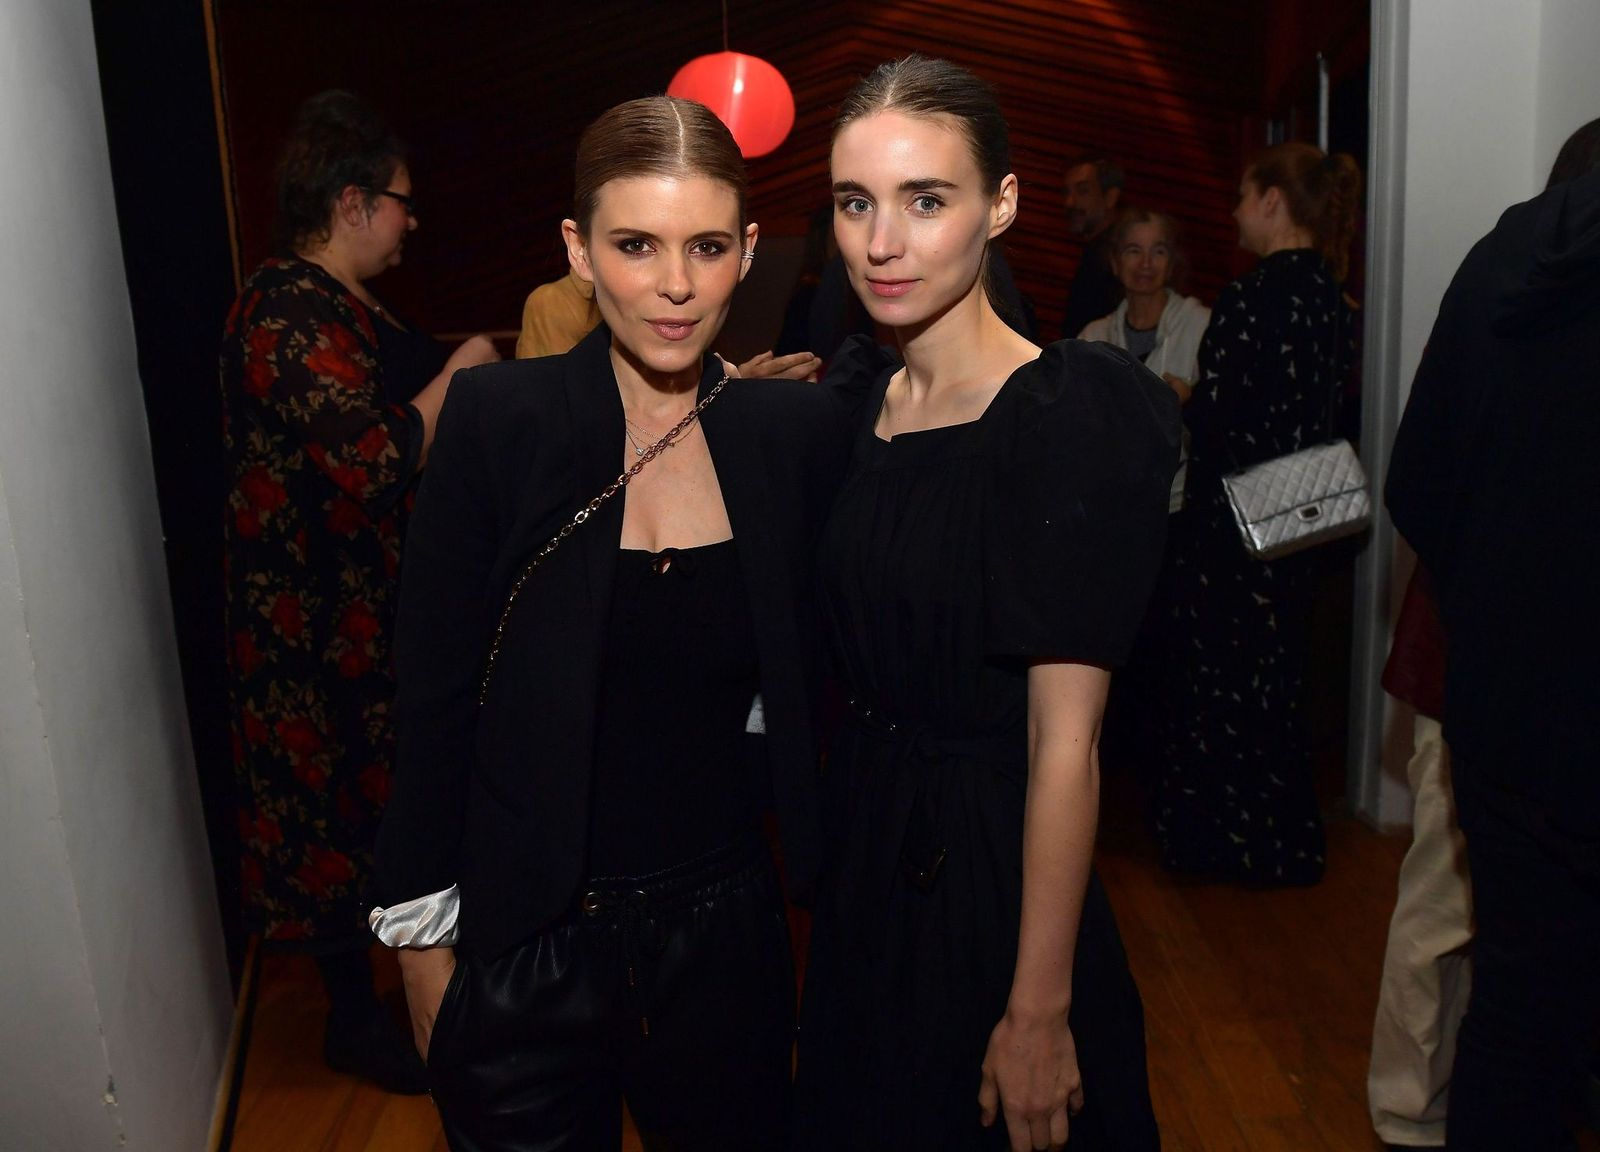 """Kate Mara and Rooney Mara at the release party to celebrate Rain Phoenix's new album """"RIVER"""", hosted by Joaquin Phoenix at Jim Henson Studios on October 28, 2019 